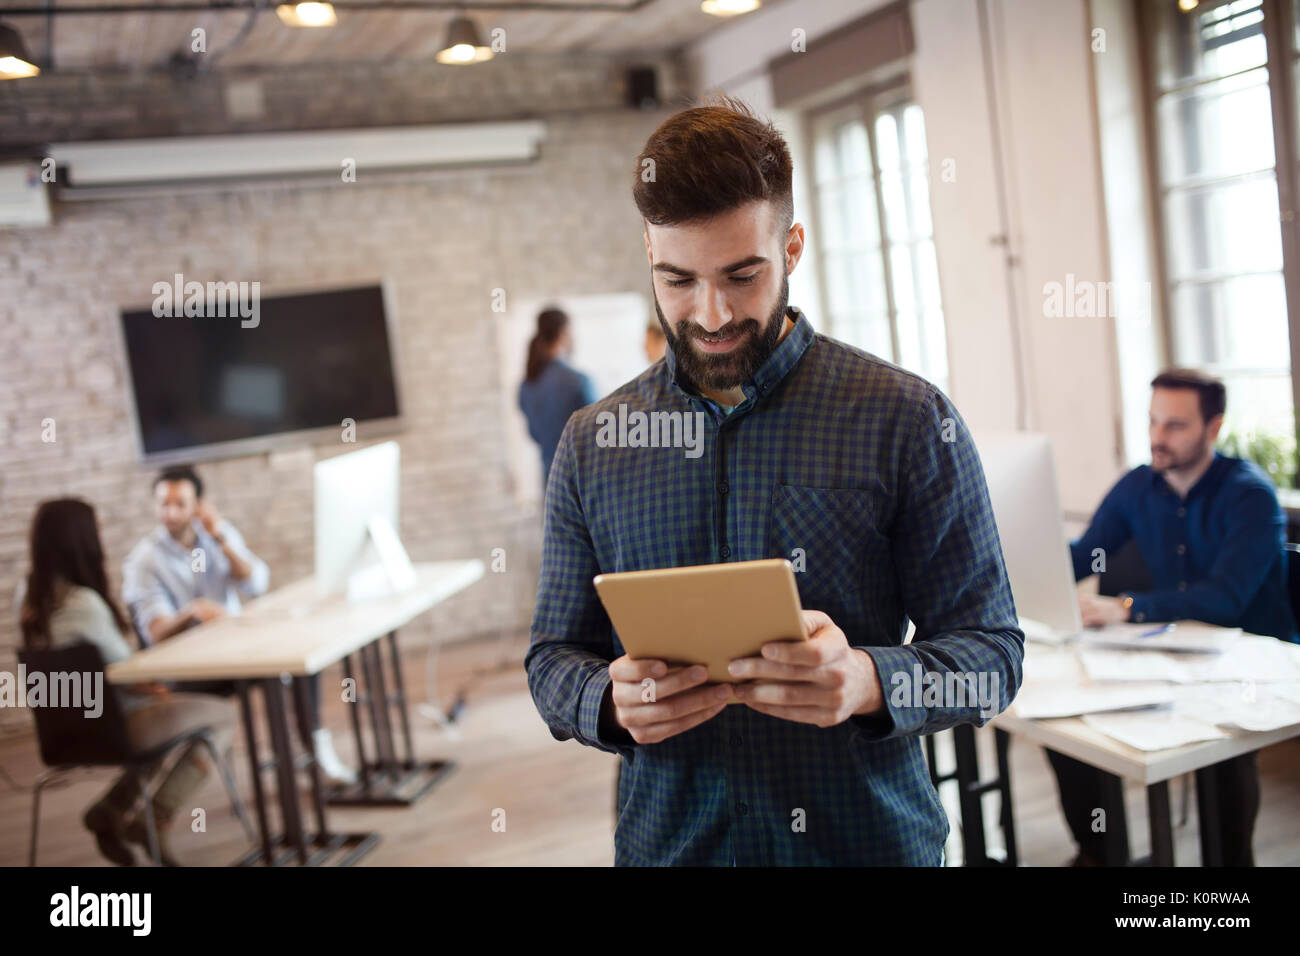 Portrait of young handsome male designer using tablet - Stock Image